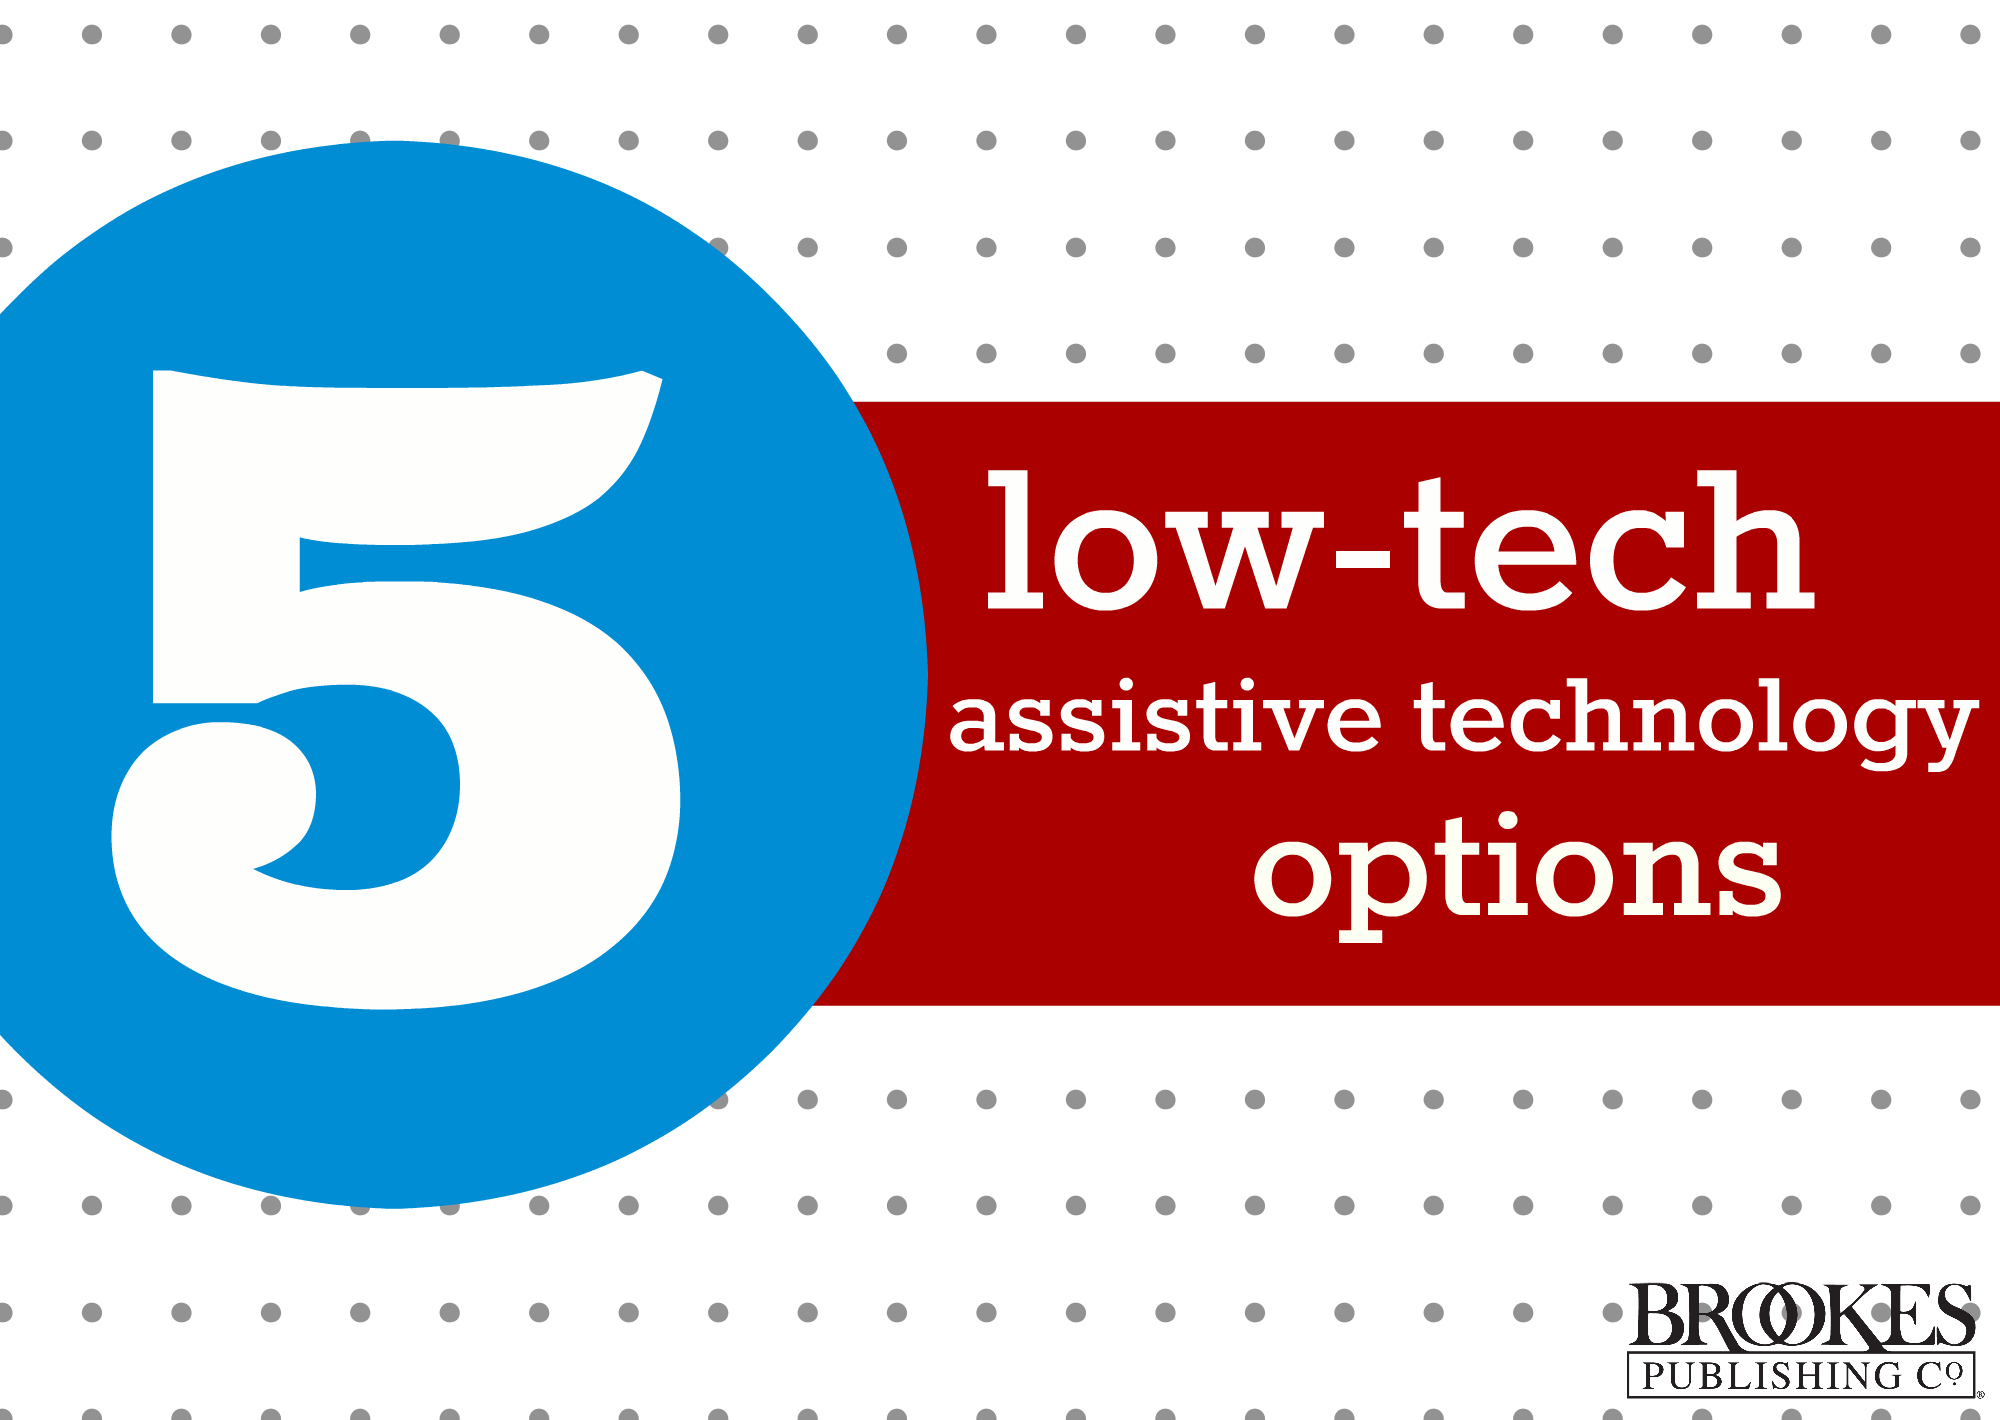 5 low-tech assistive technology options